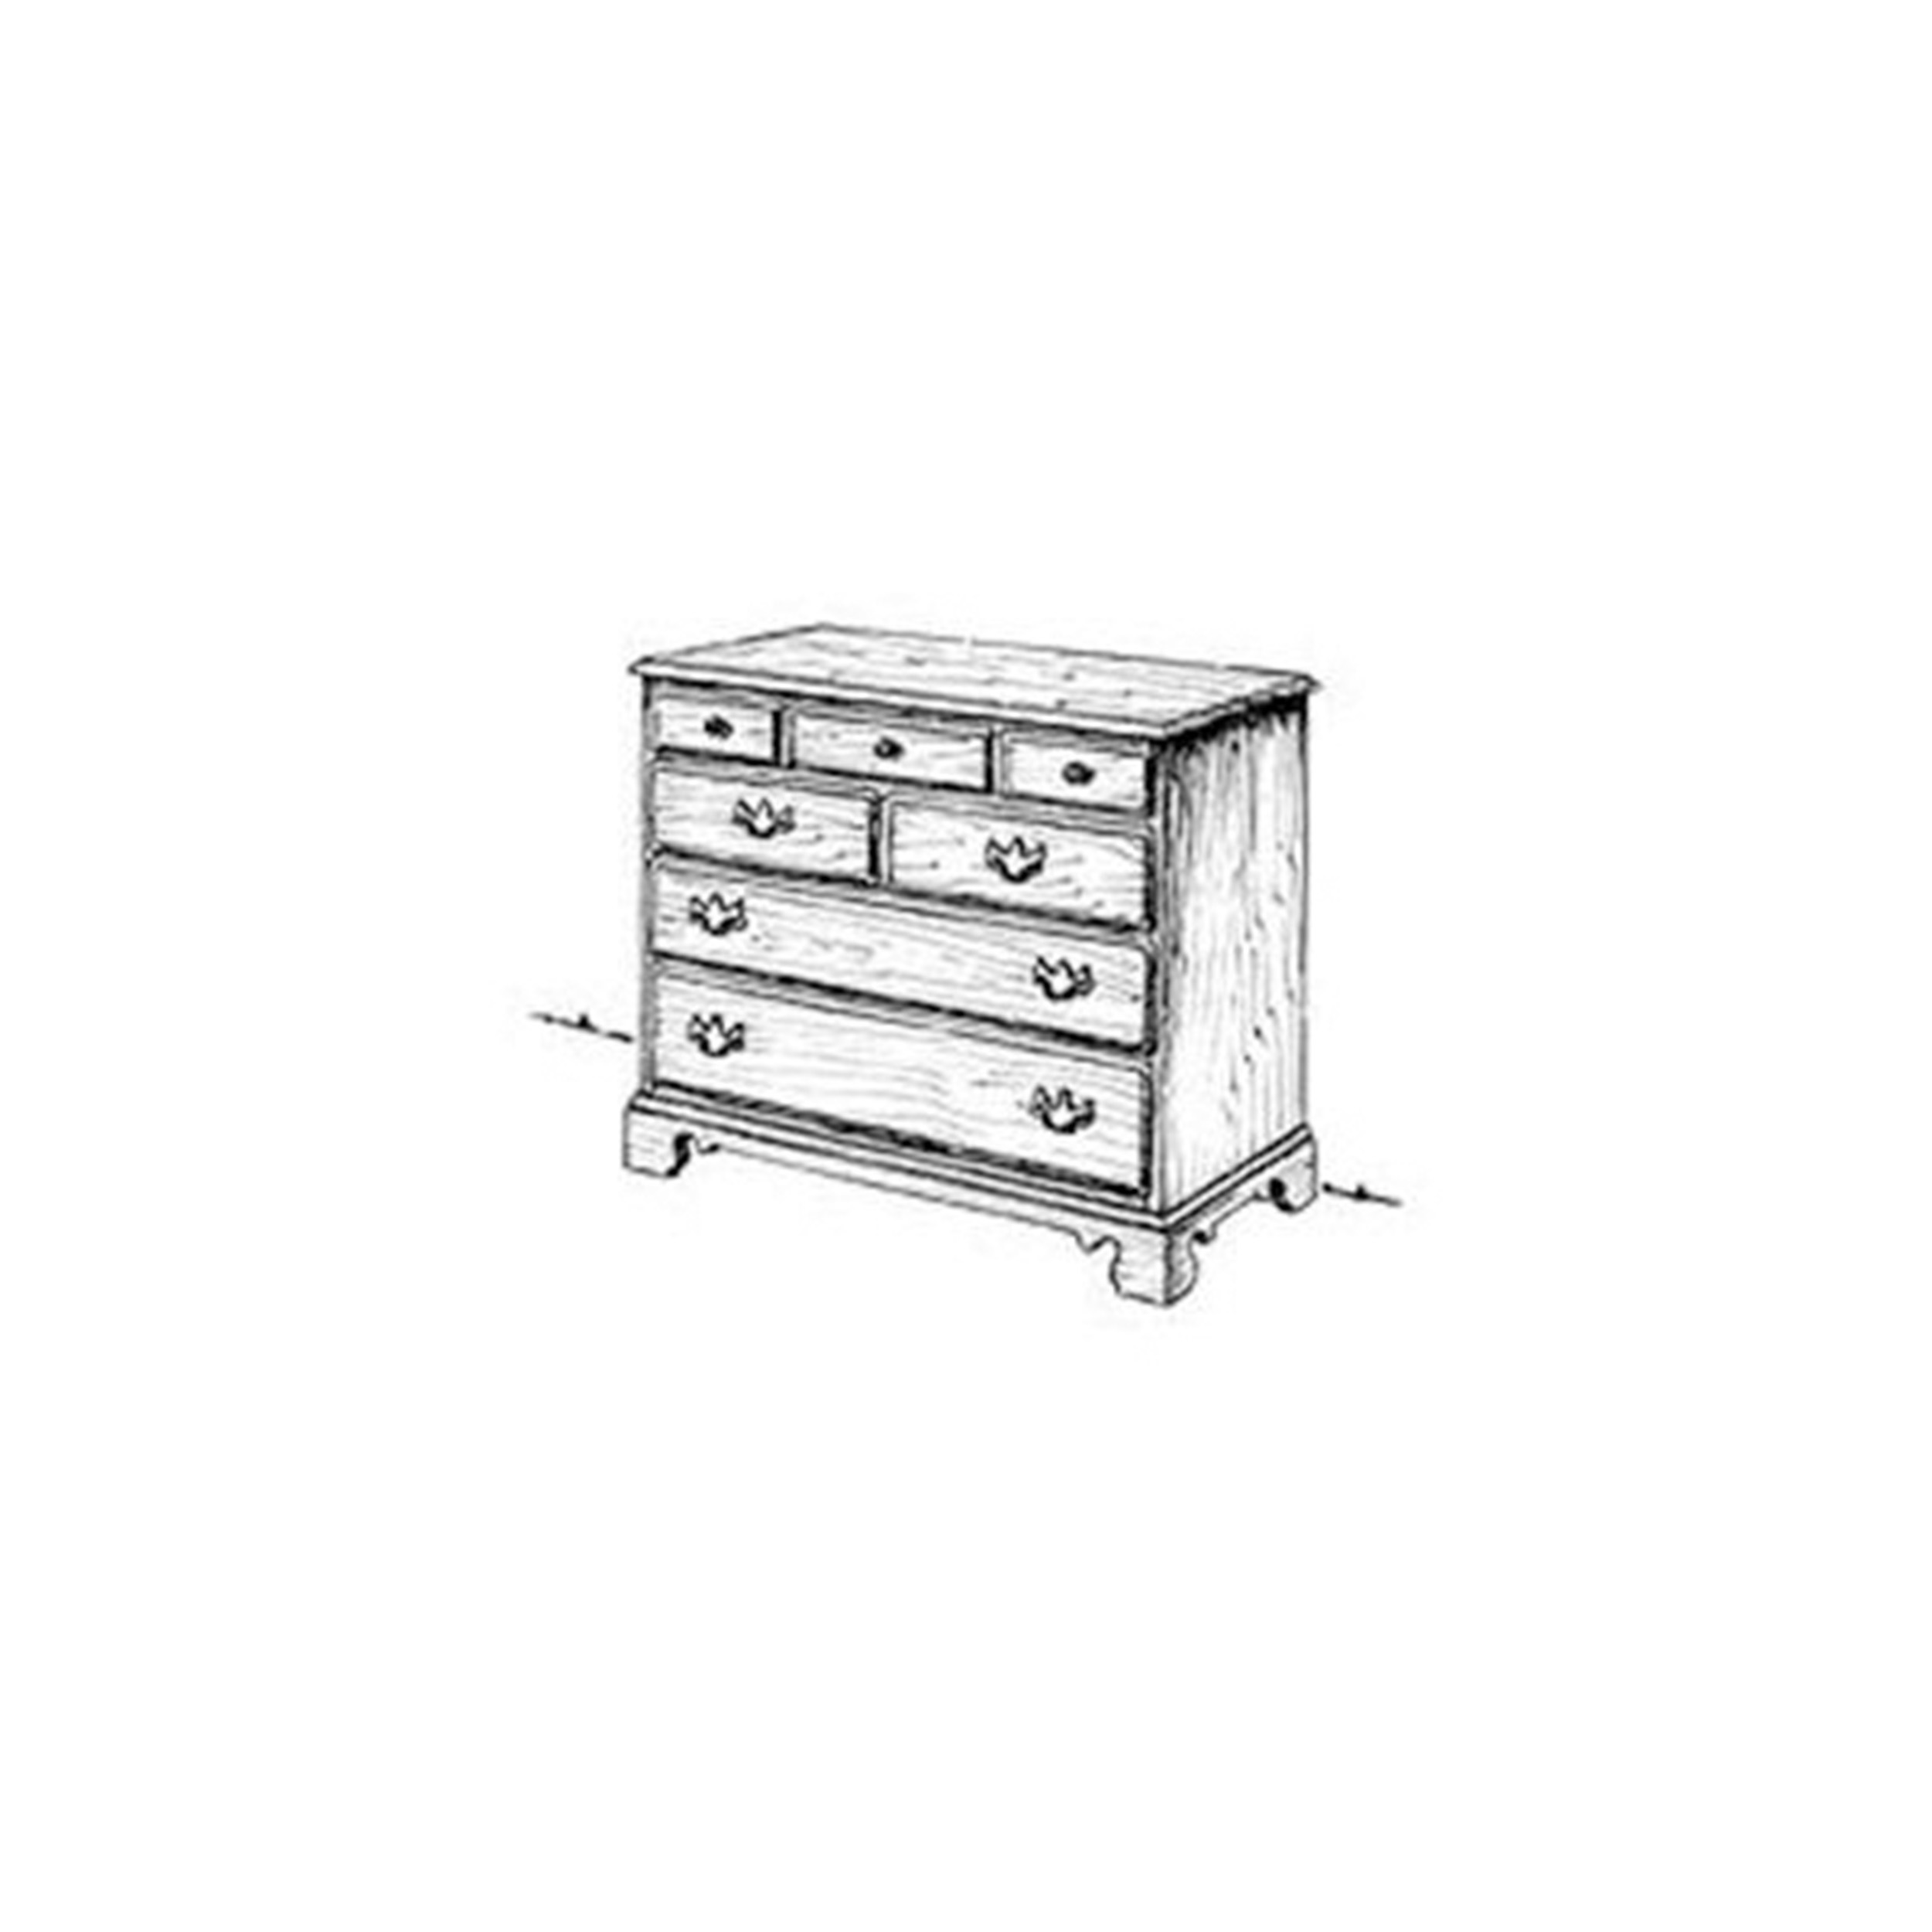 Woodworking Project Paper Plan to Build Chippendale Chest